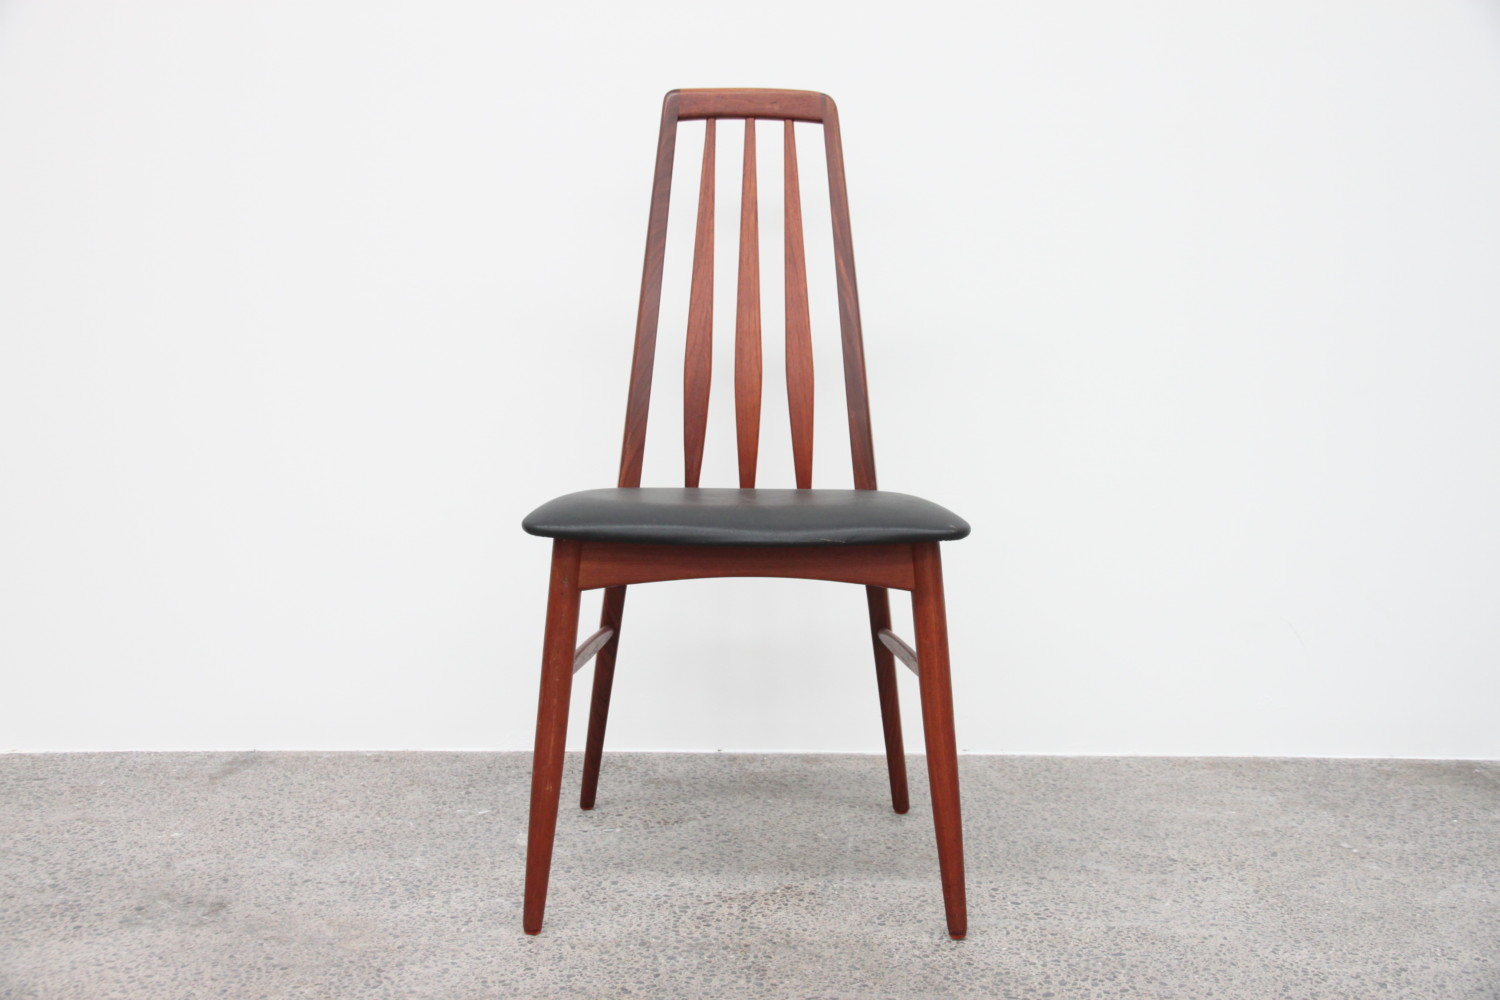 Danish High Back Dining Chairs by Niels Koefoed sold